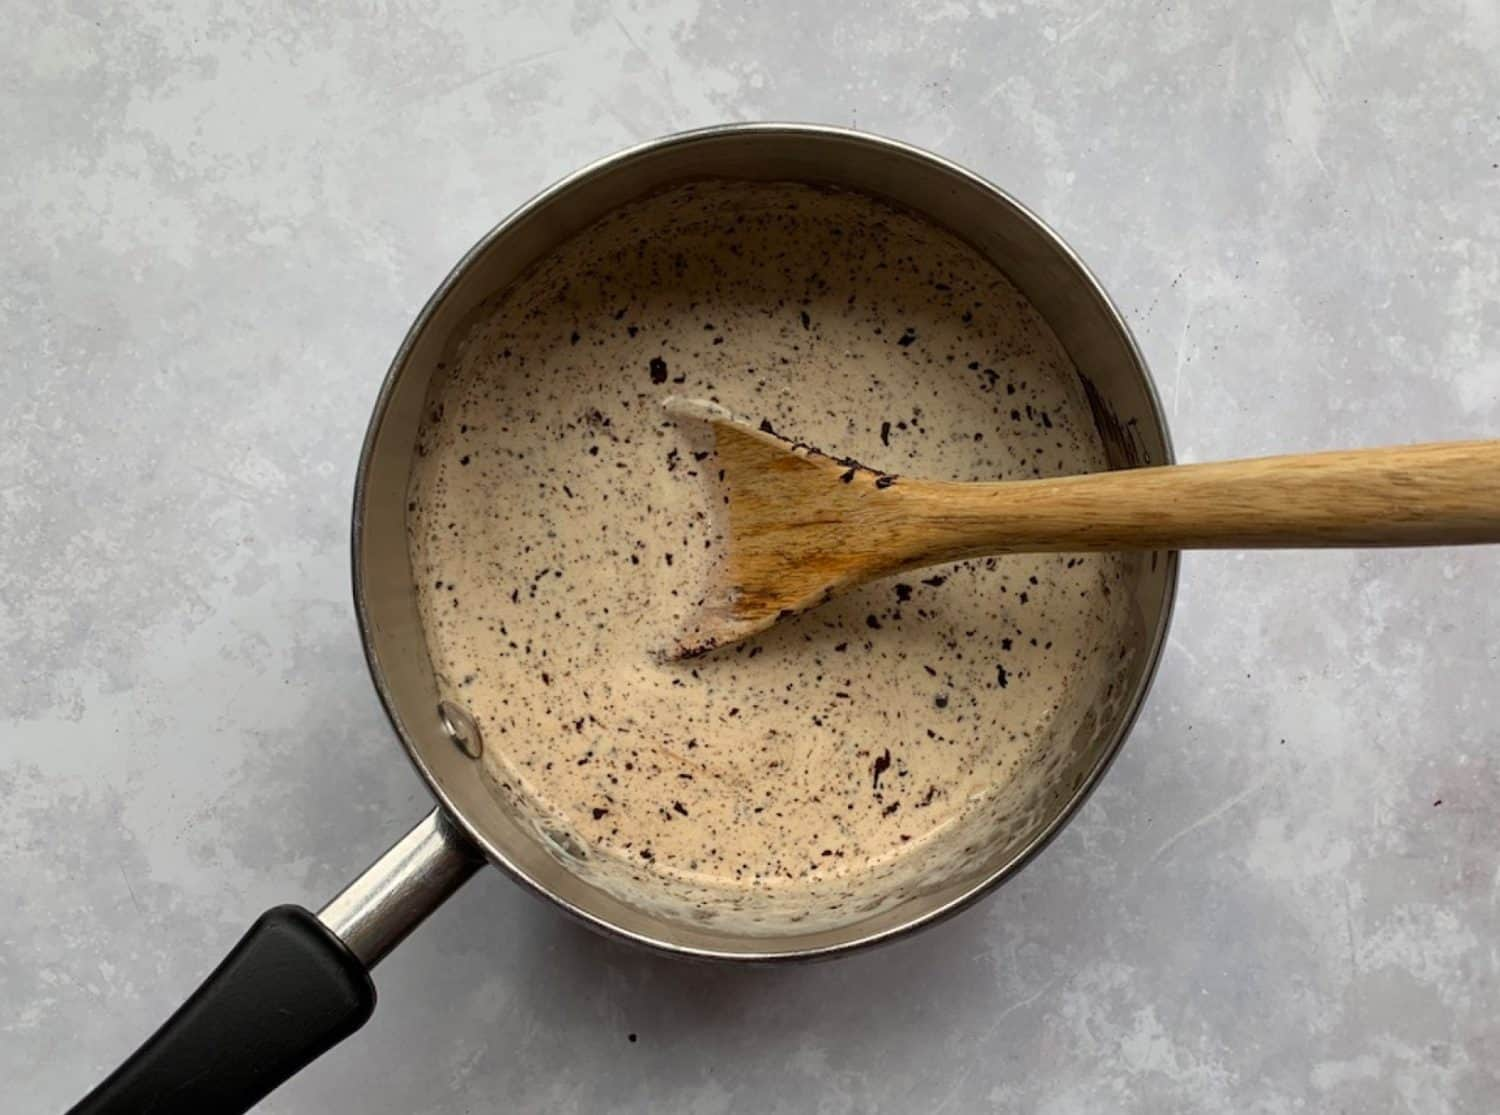 Cream and chocolate in a saucepan.